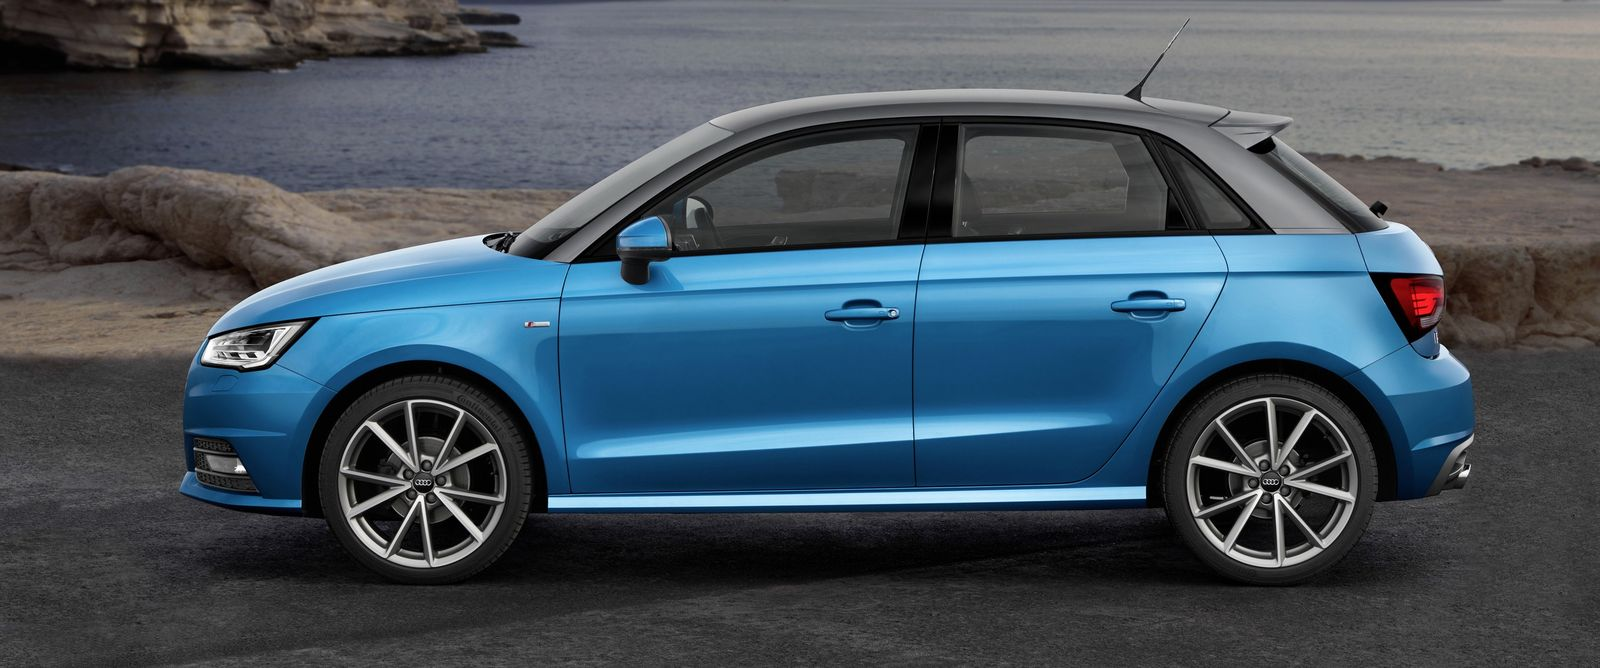 2015 audi a1 and sportback revealed carwow. Black Bedroom Furniture Sets. Home Design Ideas